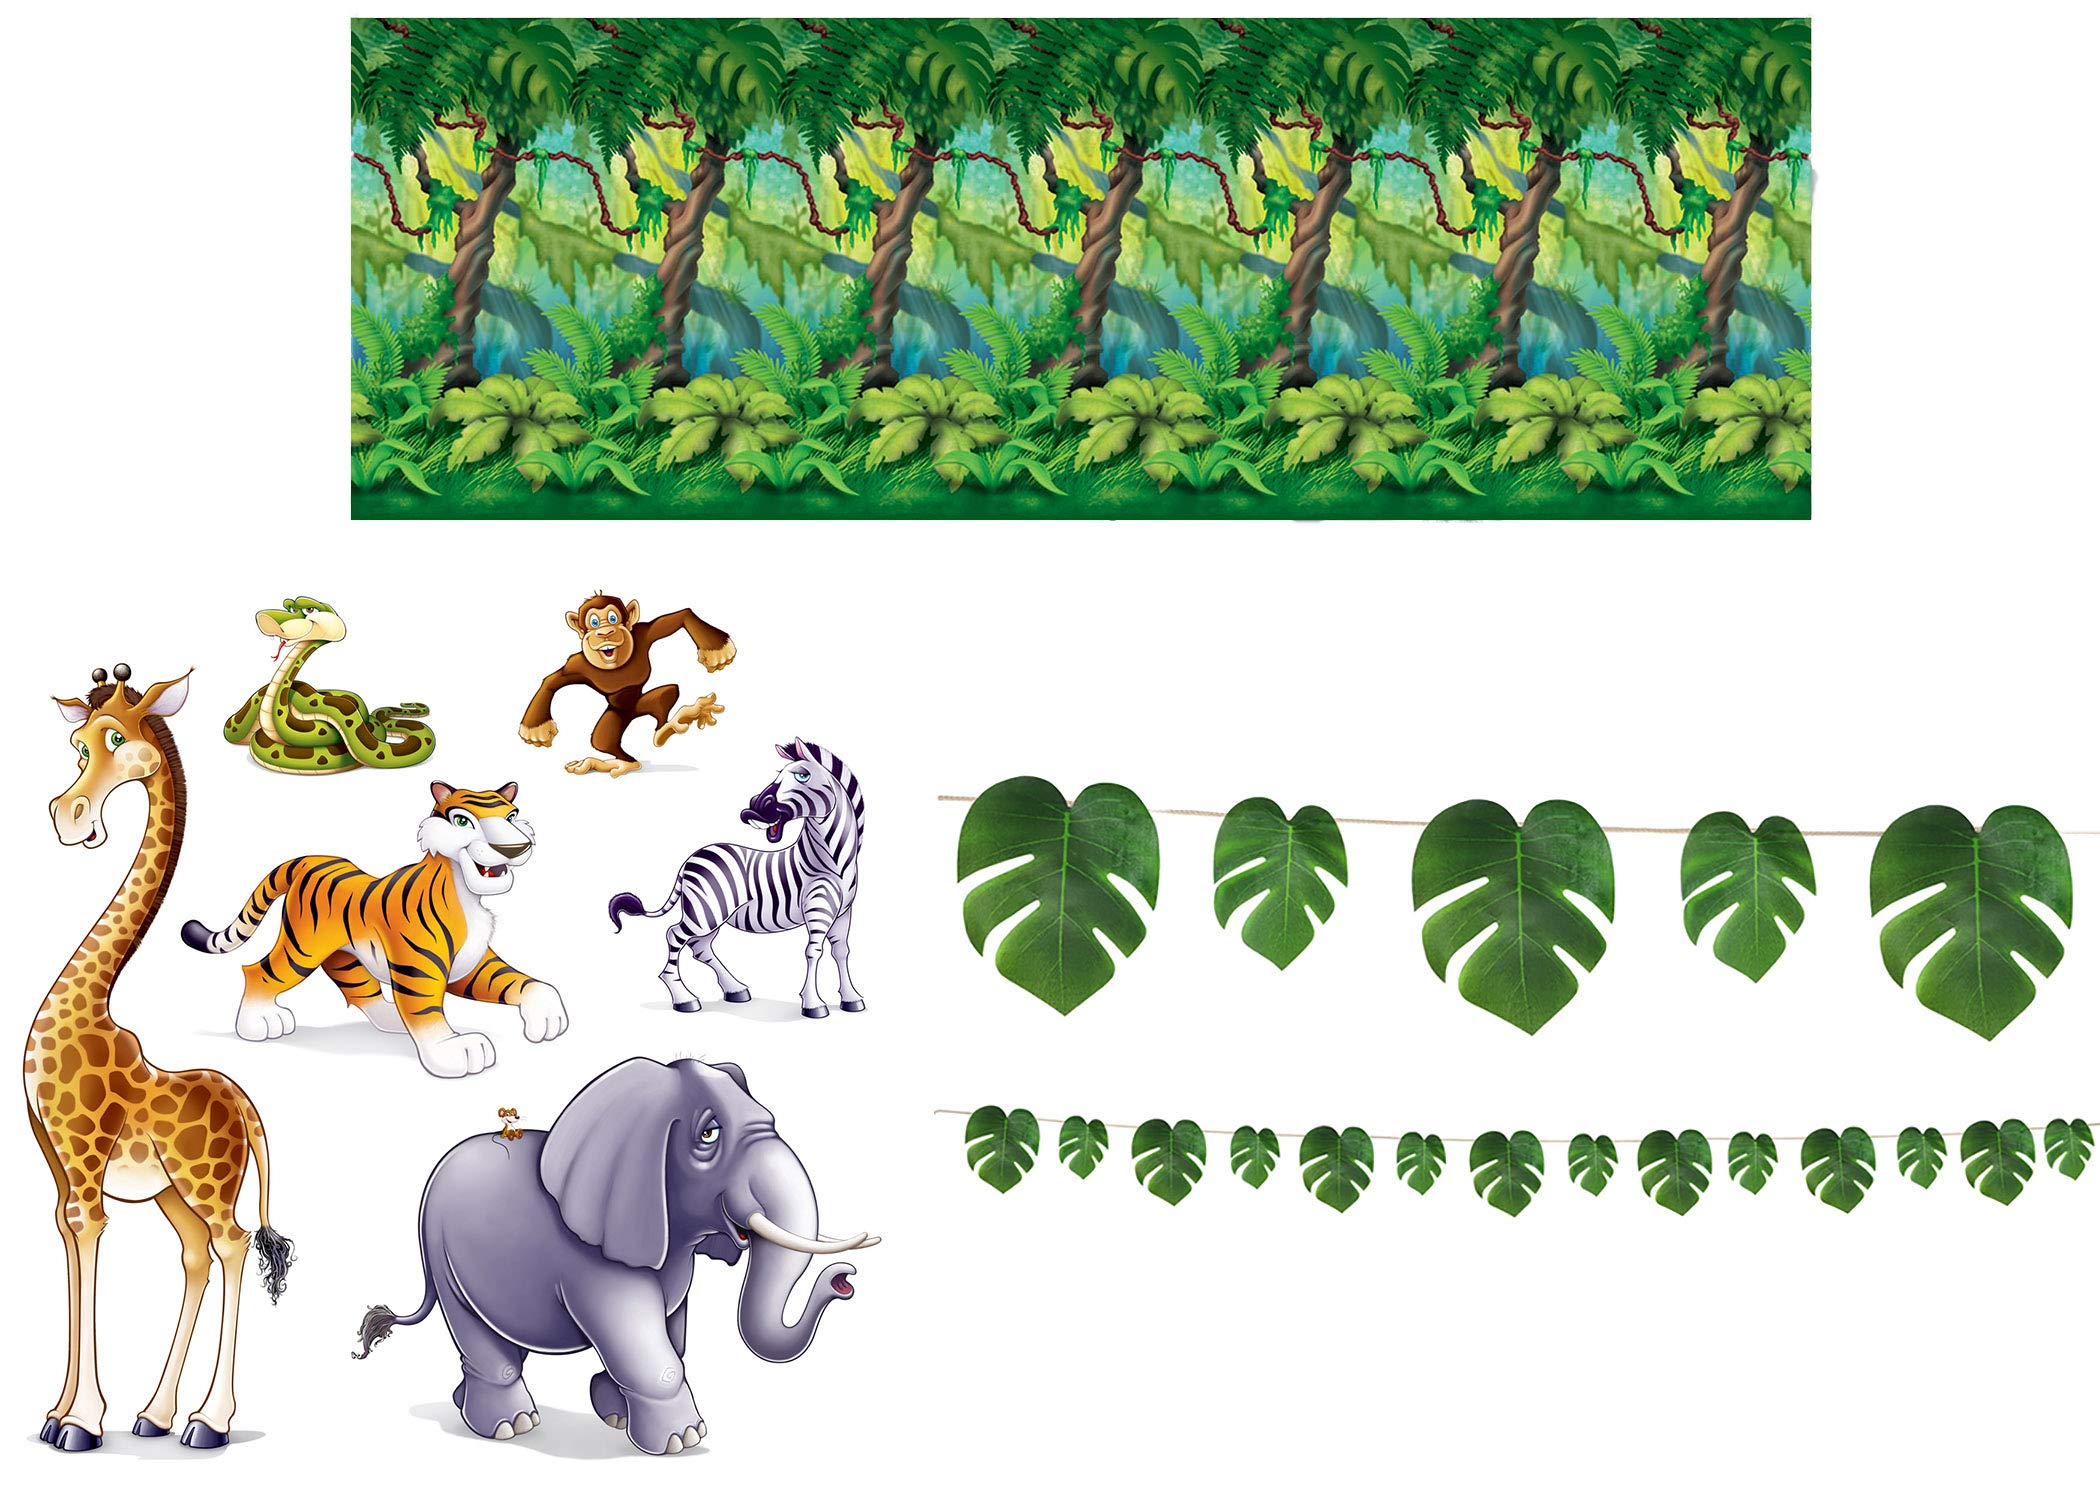 Jungle Safari Décor Bundle | Includes Jungle Trees Backdrop, Animal Props, and Palm Leaves Streamer